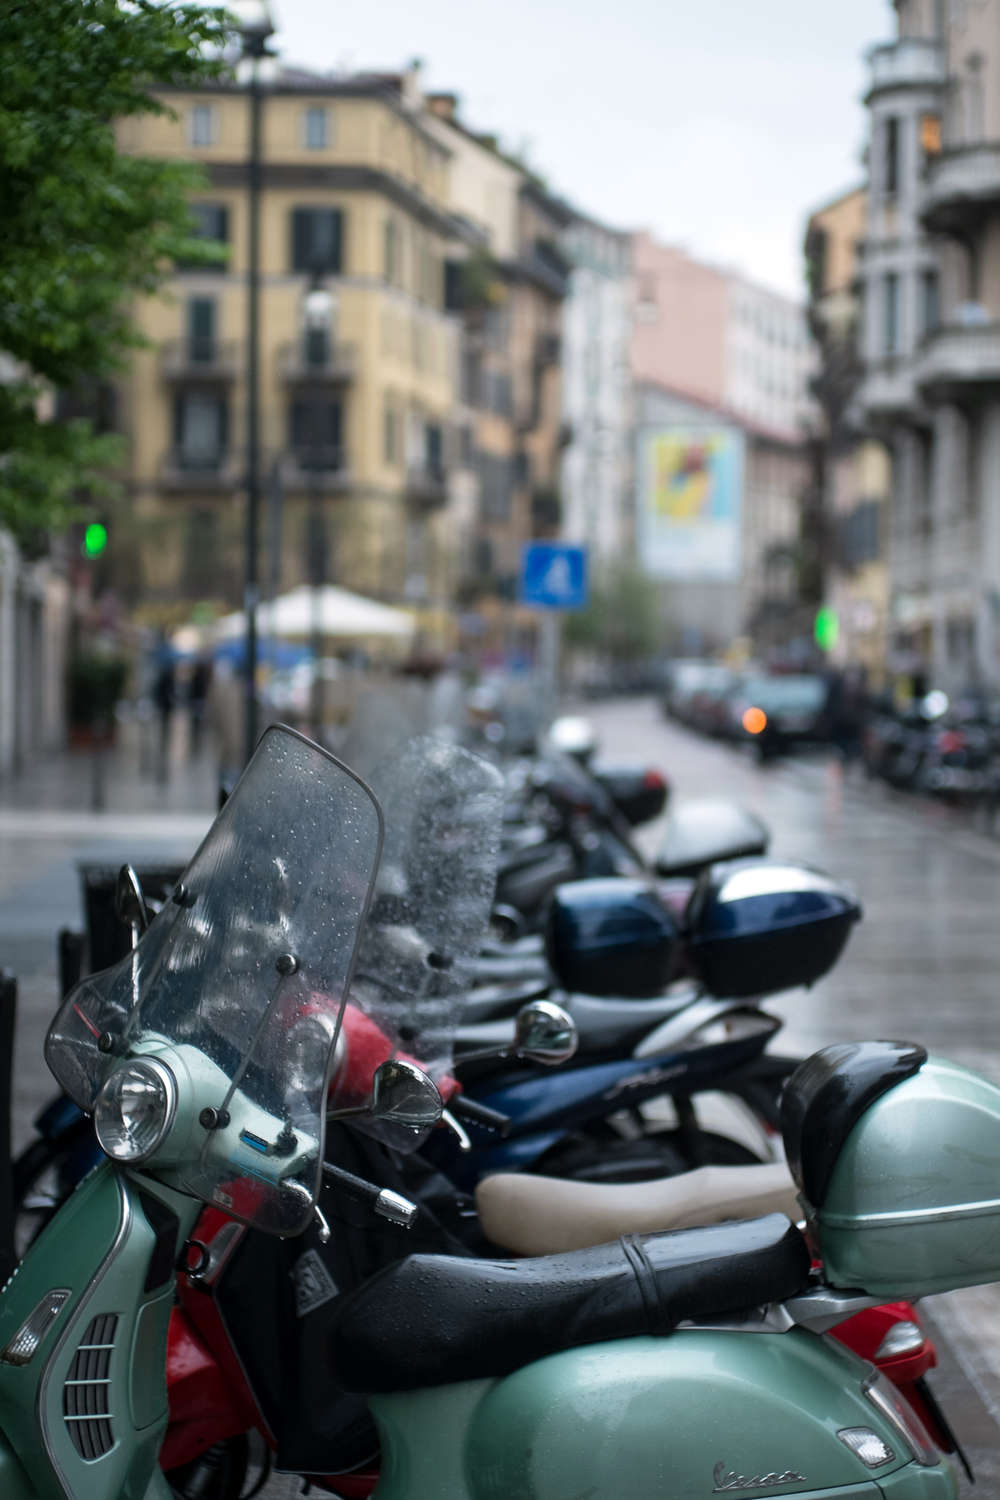 Vespas line the streets of the trendy Brera neighborhood.